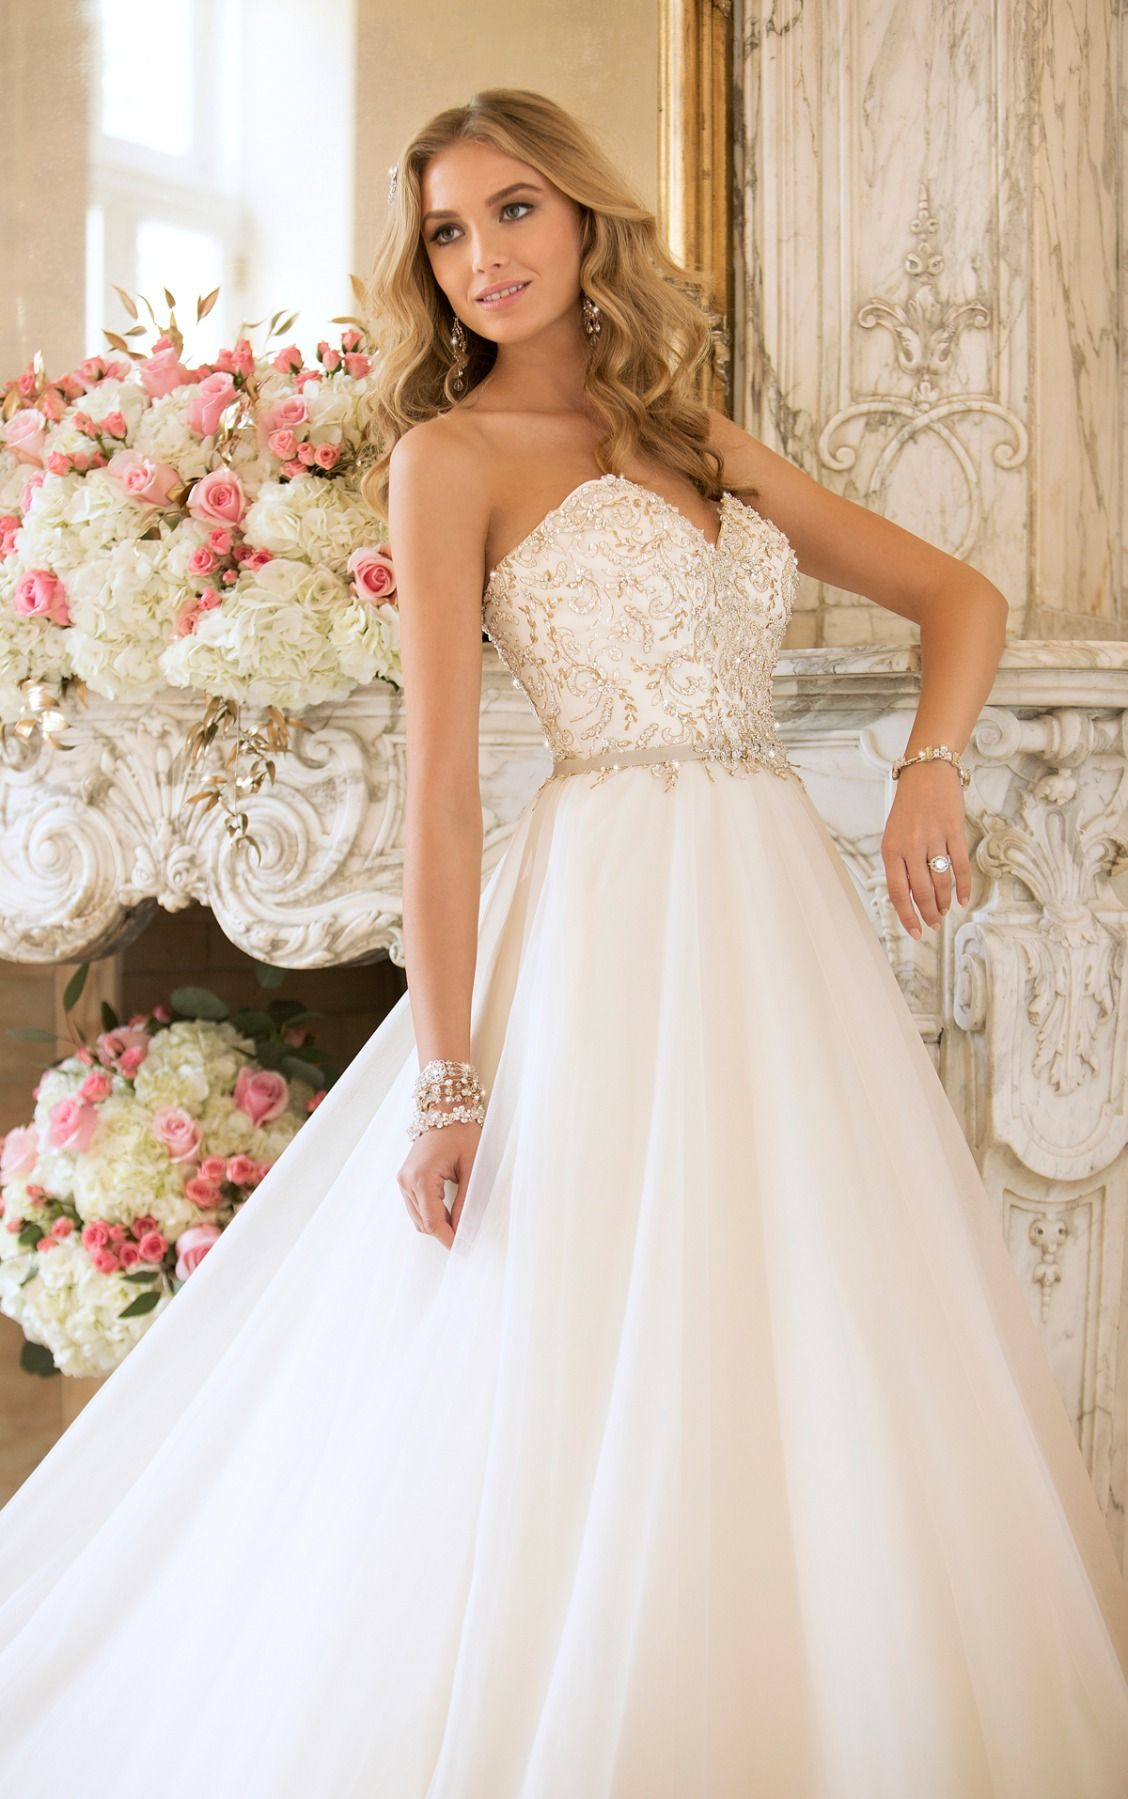 Princess Wedding Dress with Gold Accents by Stella York | FLEUR ...